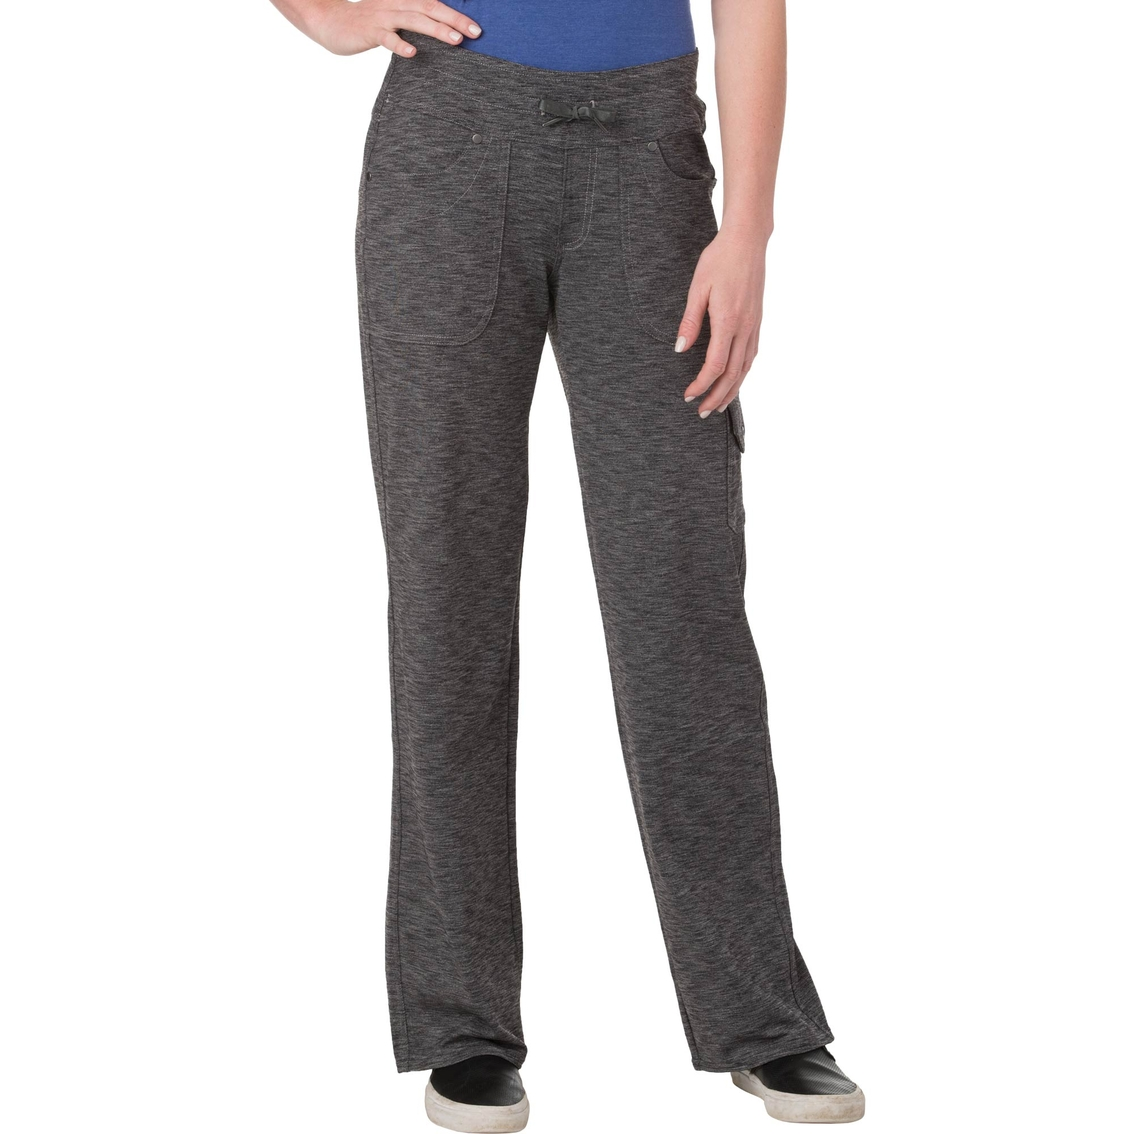 Amazing The Kuhl Mova Pants Use A Soft And Durable Stretch Nylon In A Knit Process Made To Look Like Woven Fabric For Texture And Appeal They Have A Faux Fly And Contoured Waistband With Drawcord For Easy On And Off Mova Pants Have Five Pockets